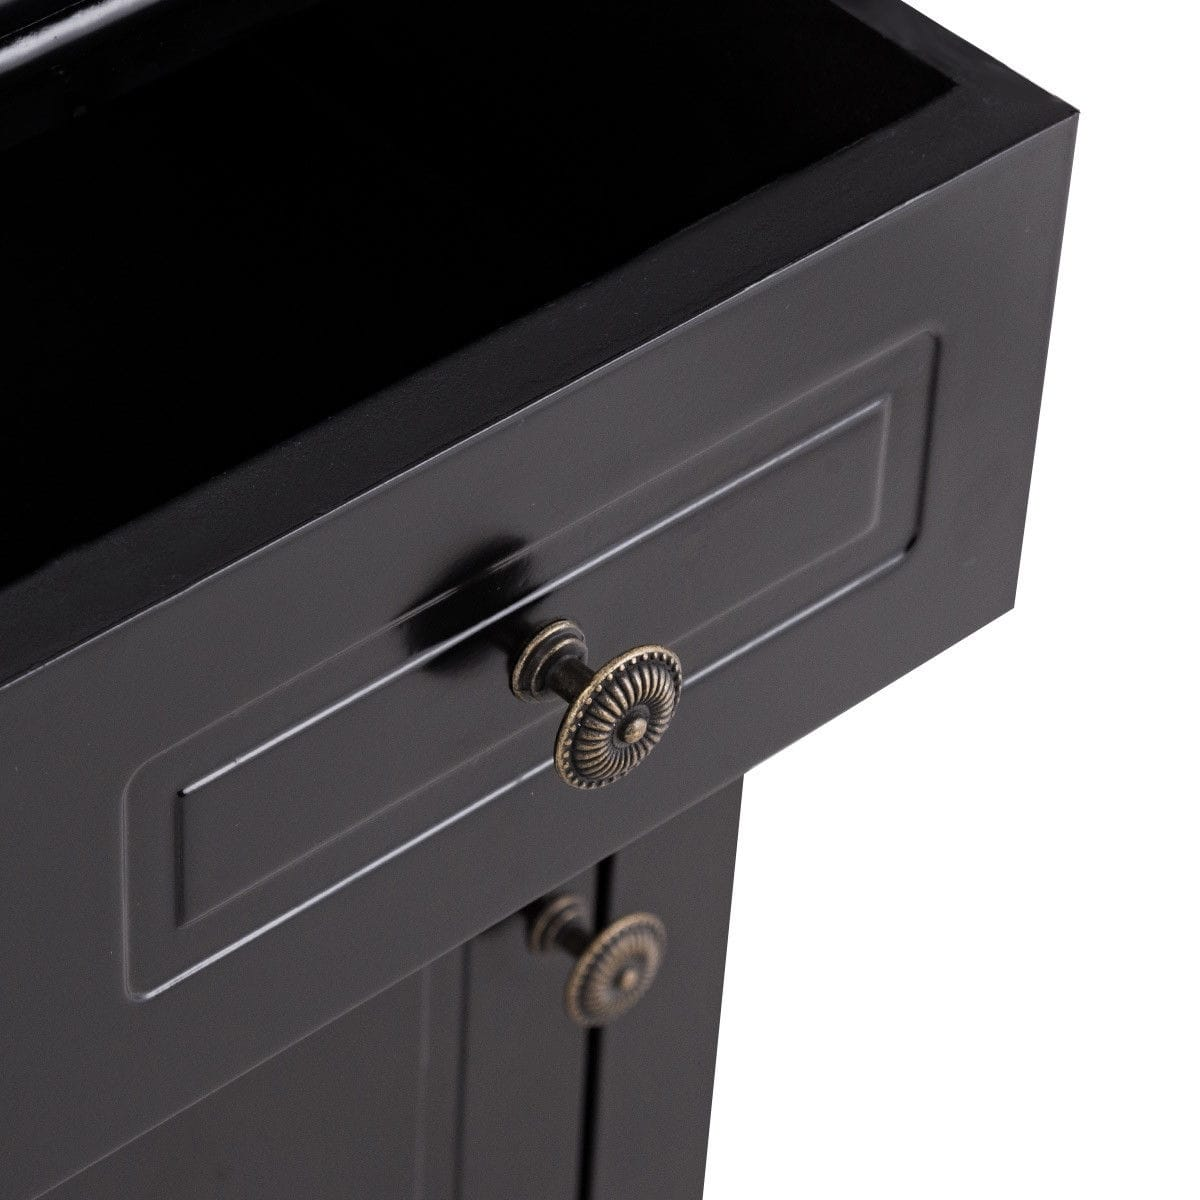 way black nightstand storage drawer and cabinet wood end for bedroom accent table with lock free shipping today patio world plastic garden chairs small bathroom wall decorating